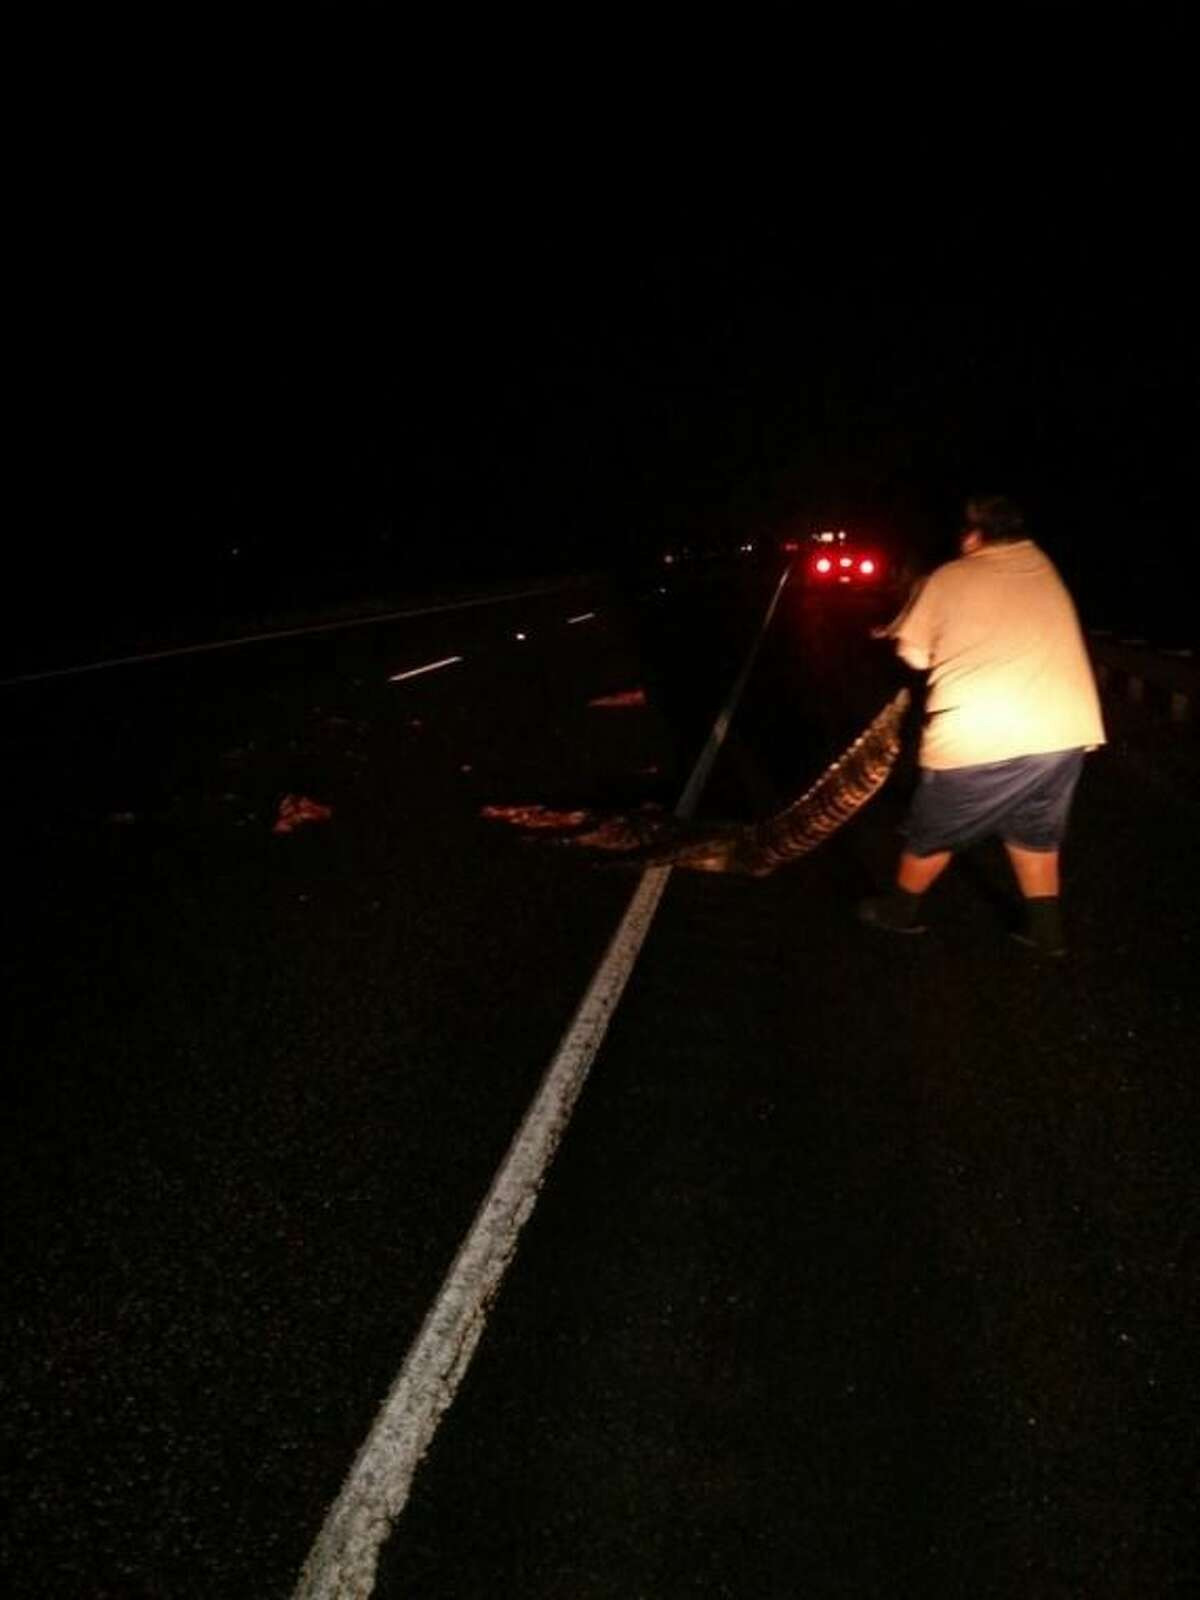 An alligator, estimated to have been around 12 feet long, is removed from US 59 south of Cleveland at the San Jacinto River Bridge. A Toyota Tundra driven by Michael Groh of Splendora struck and killed the alligator Wednesday night, Oct. 30. Groh pulled the reptile from the road to prevent problems for other motorists.